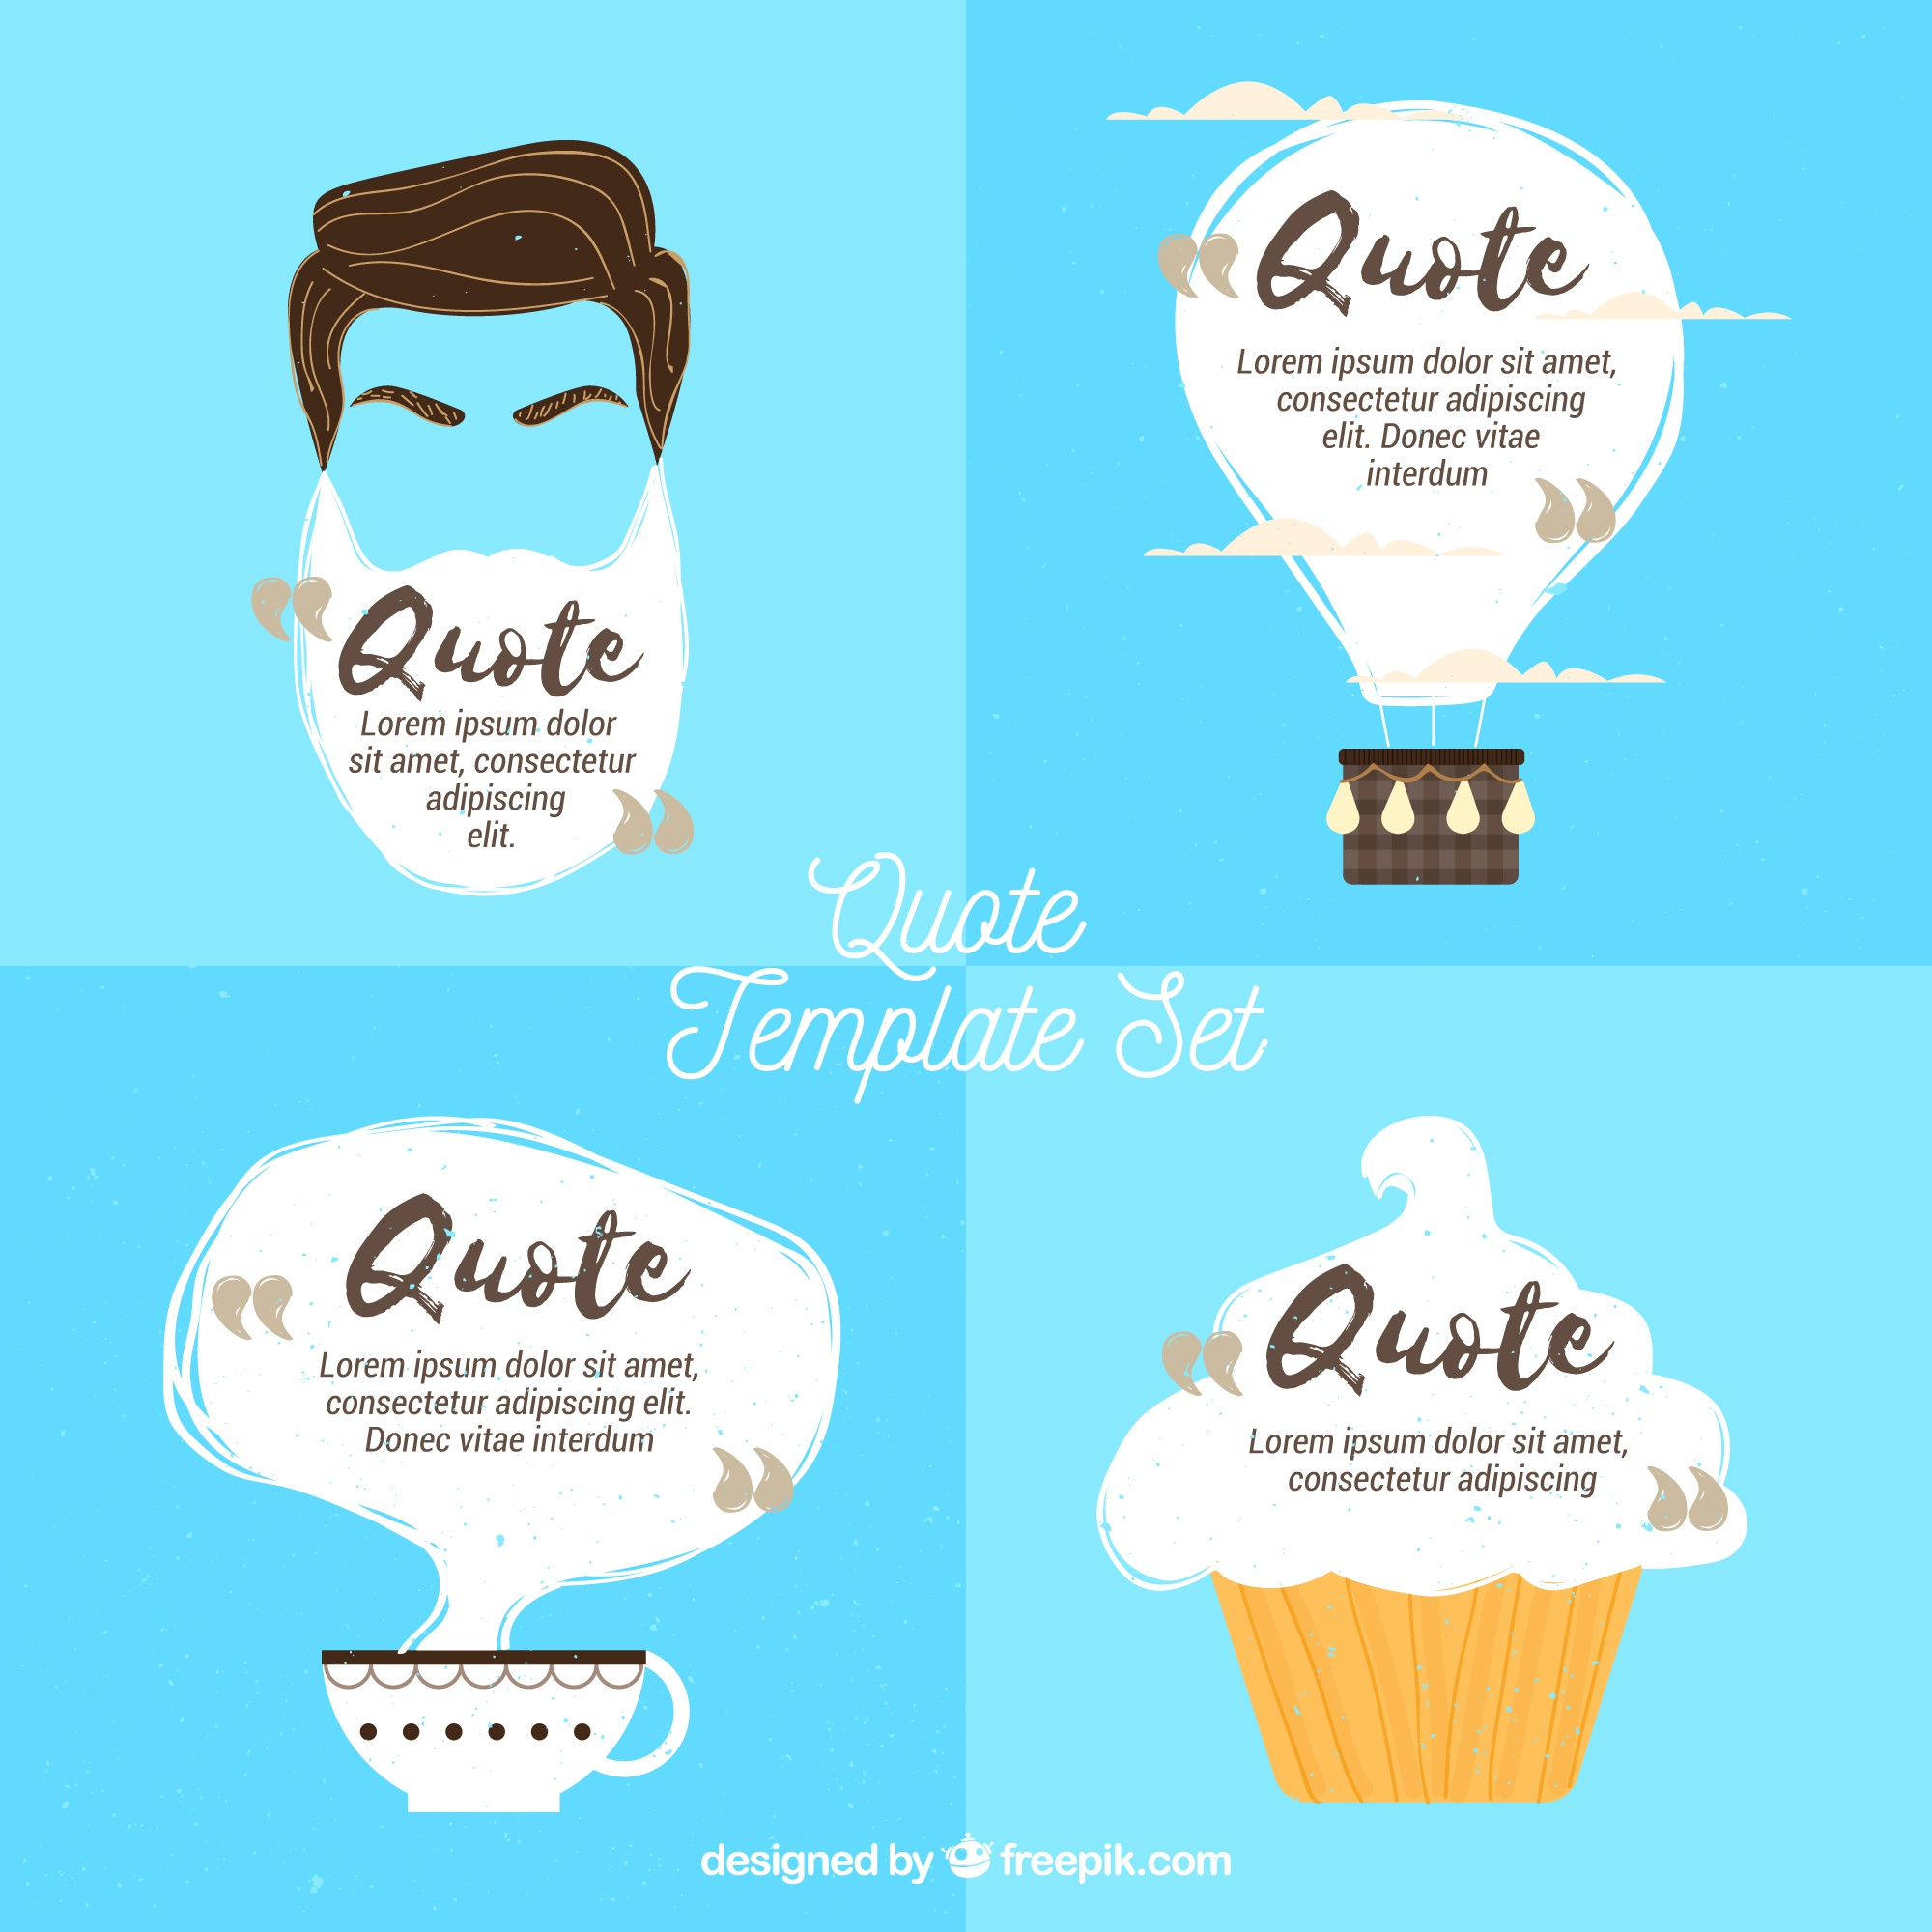 Collection of original quote templates